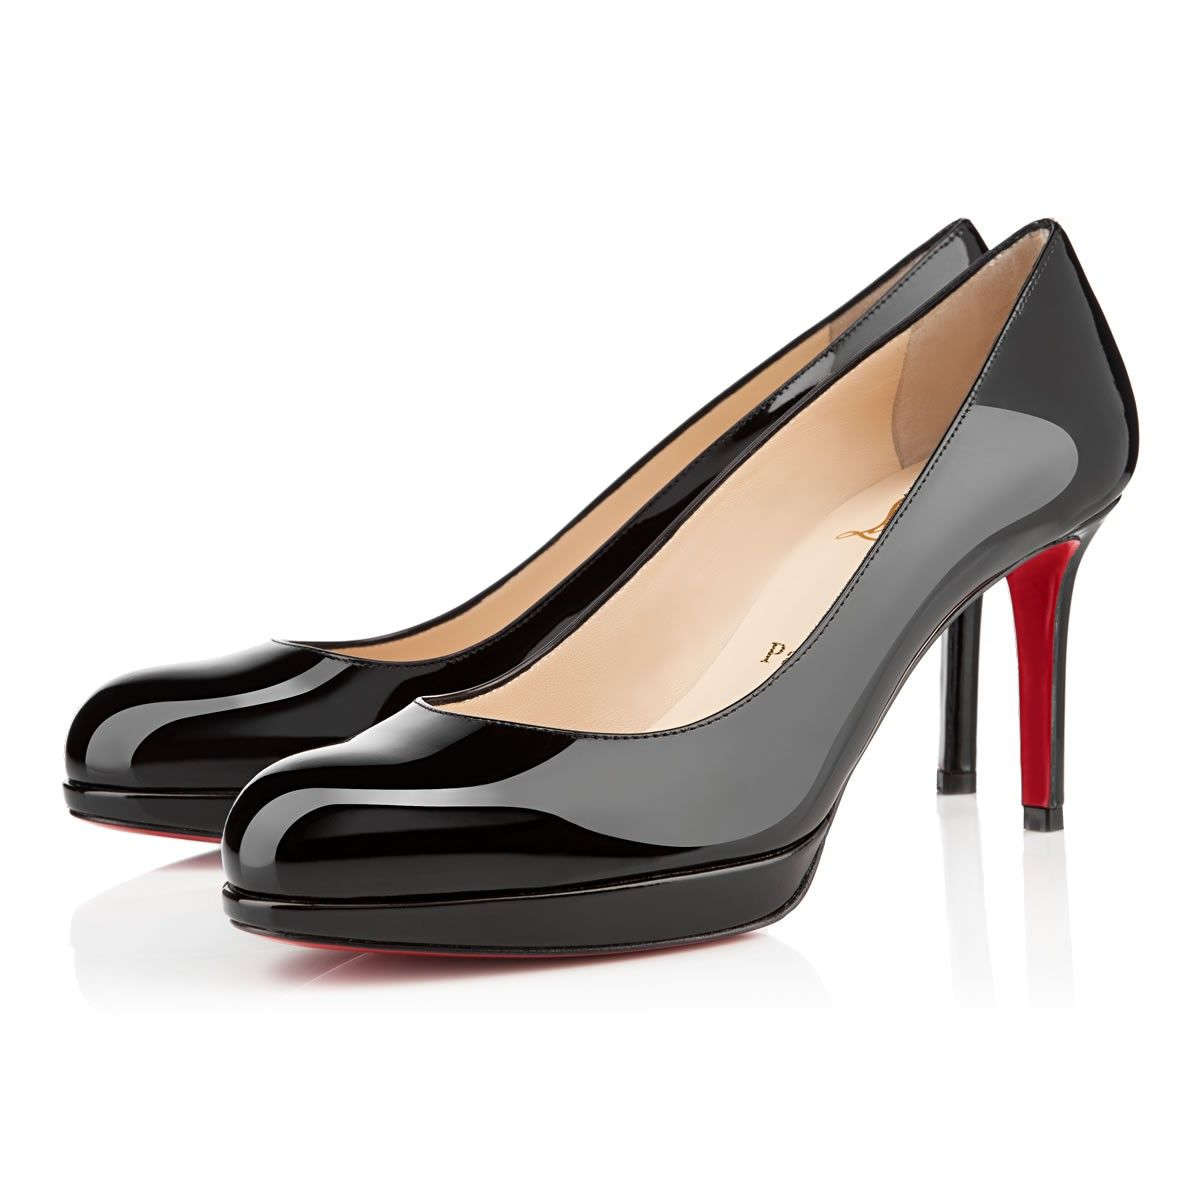 New Simple Pump 85 Black Patent Leather - Women Shoes - Christian Louboutin